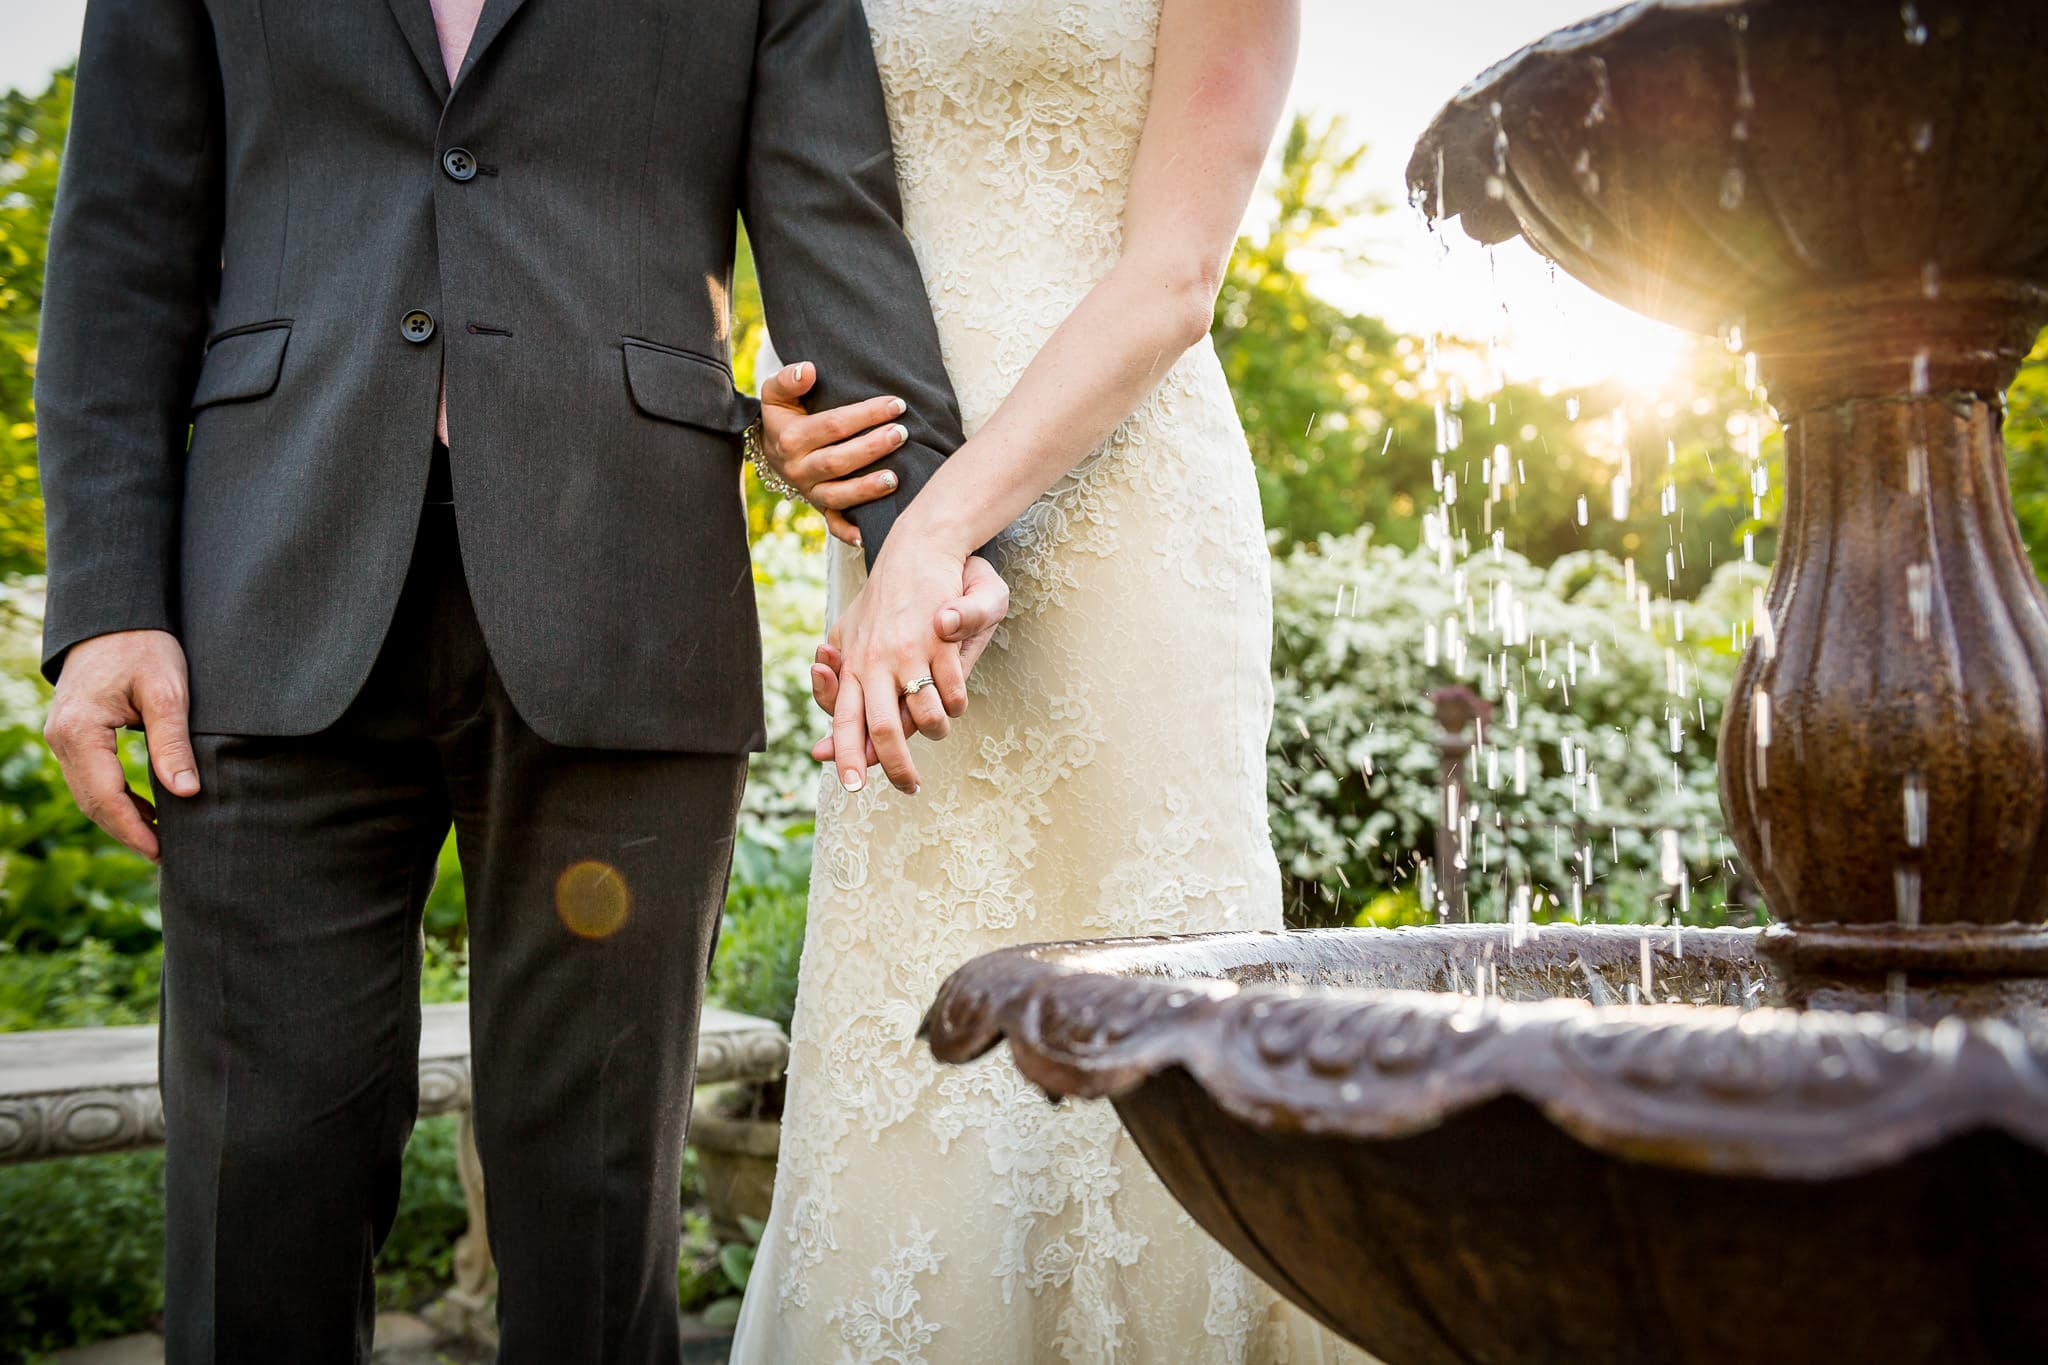 Bride & Groom holding hands in front of Camrose Hill's water fountain with sun flare shooting through the water